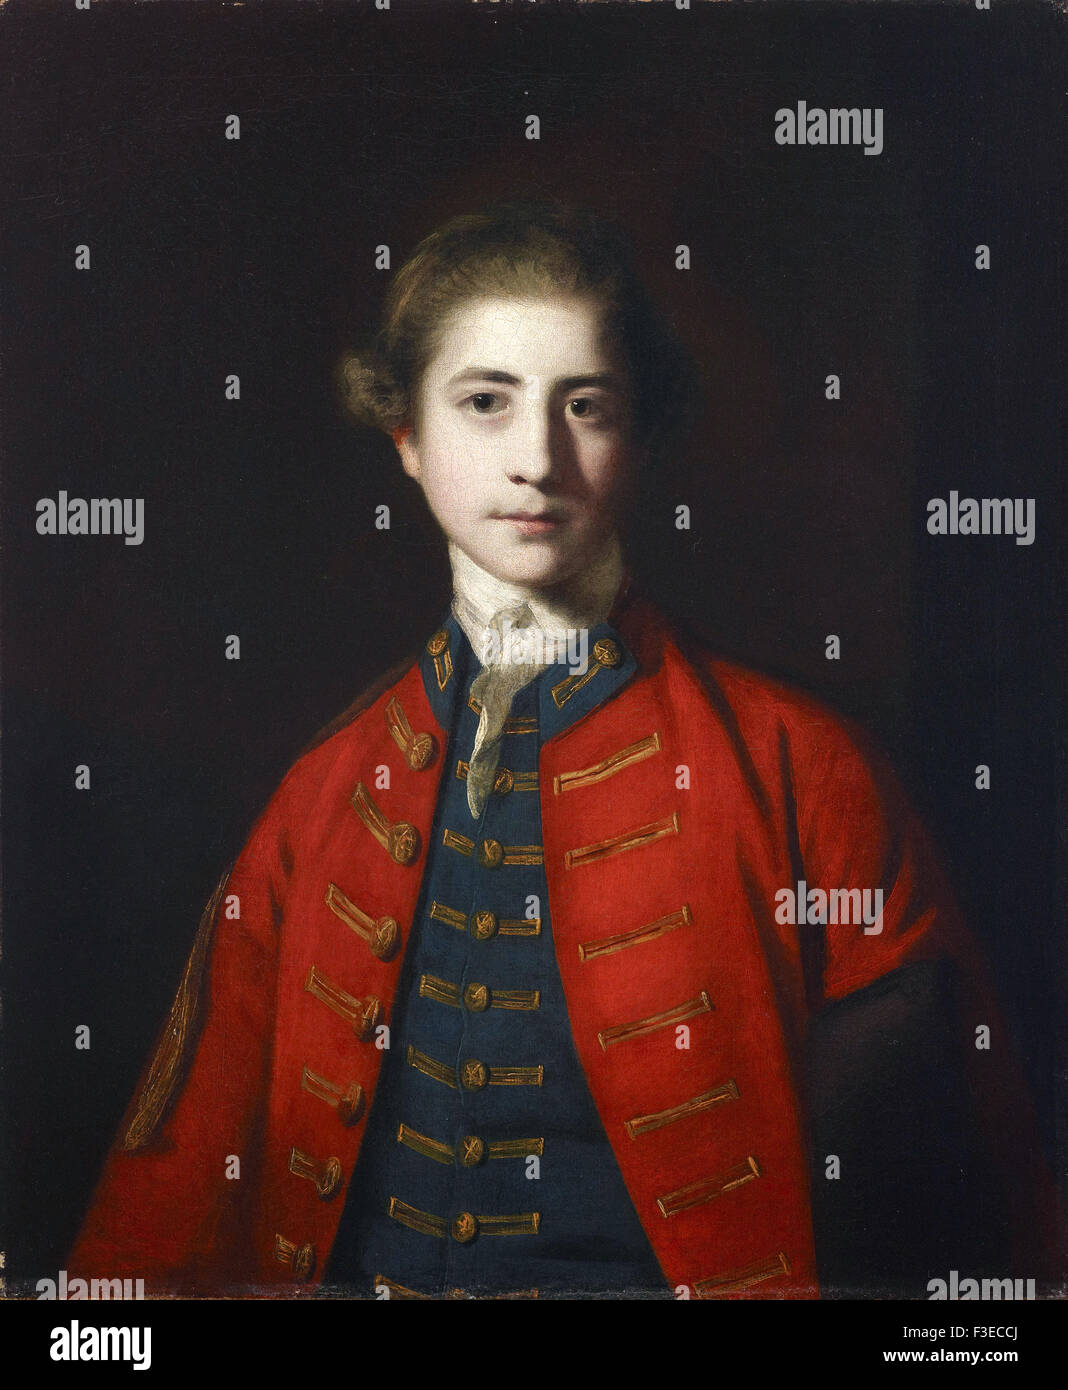 Sir Joshua Reynolds - Stephen Croft, Junior - Stock Image